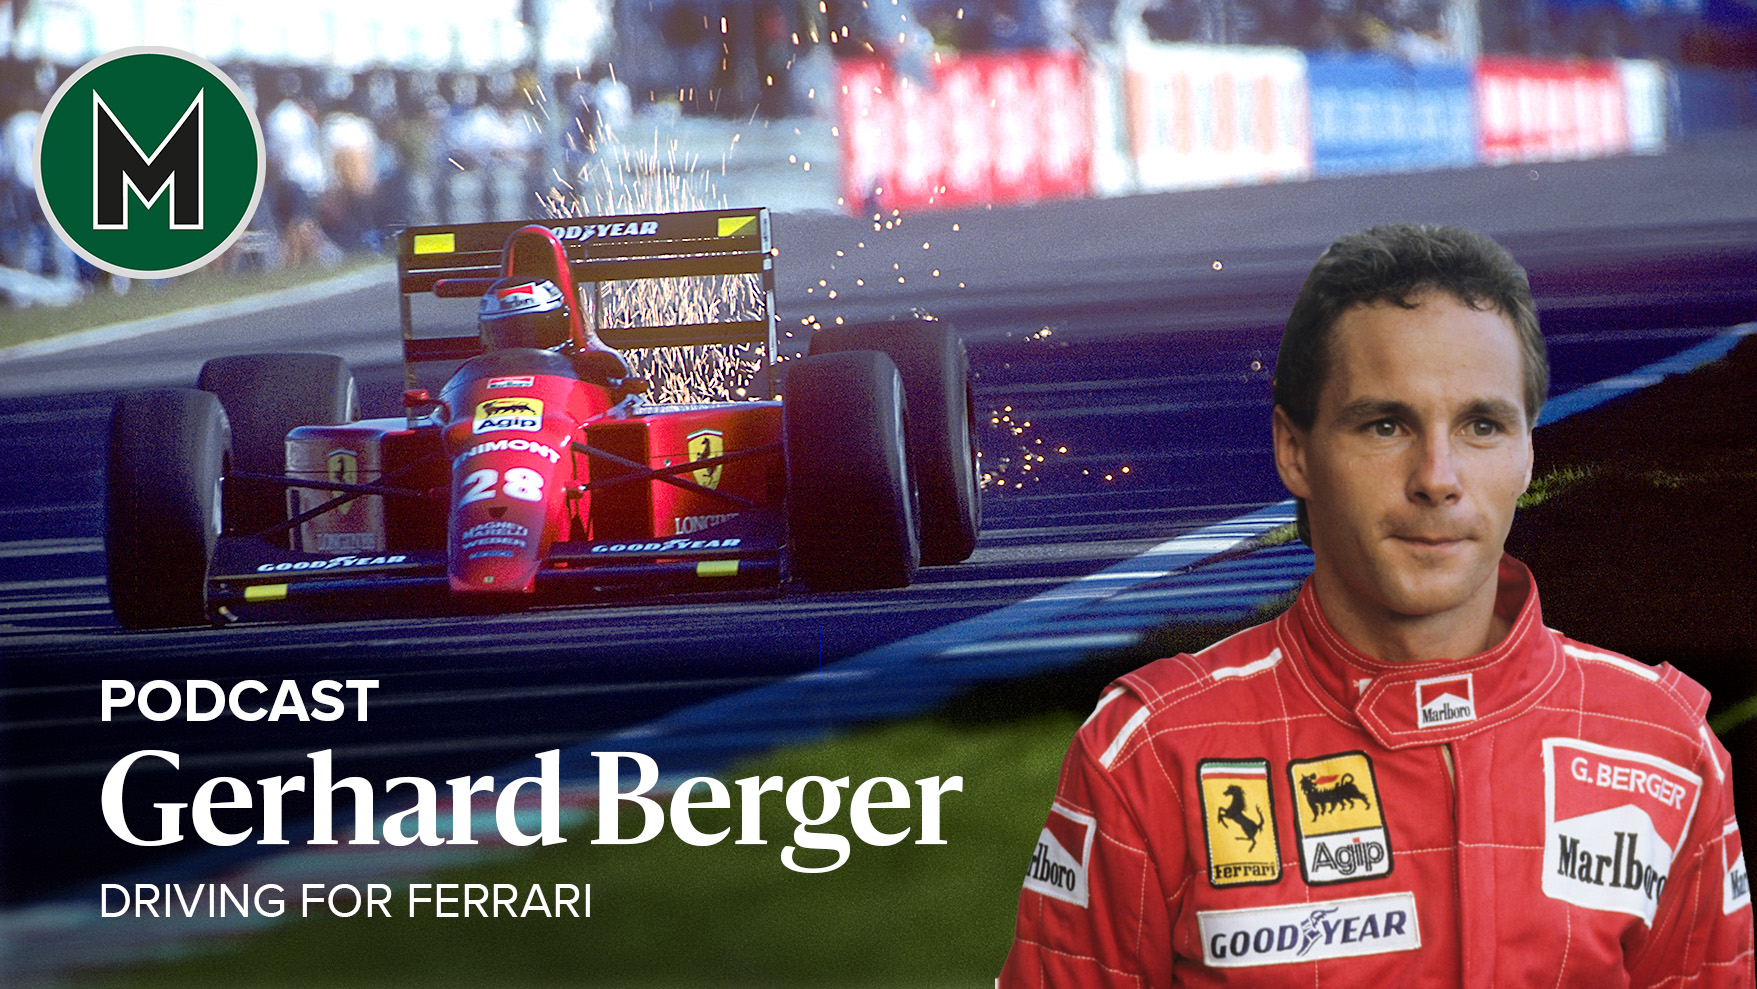 Podcast: Gerhard Berger, driving for Ferrari